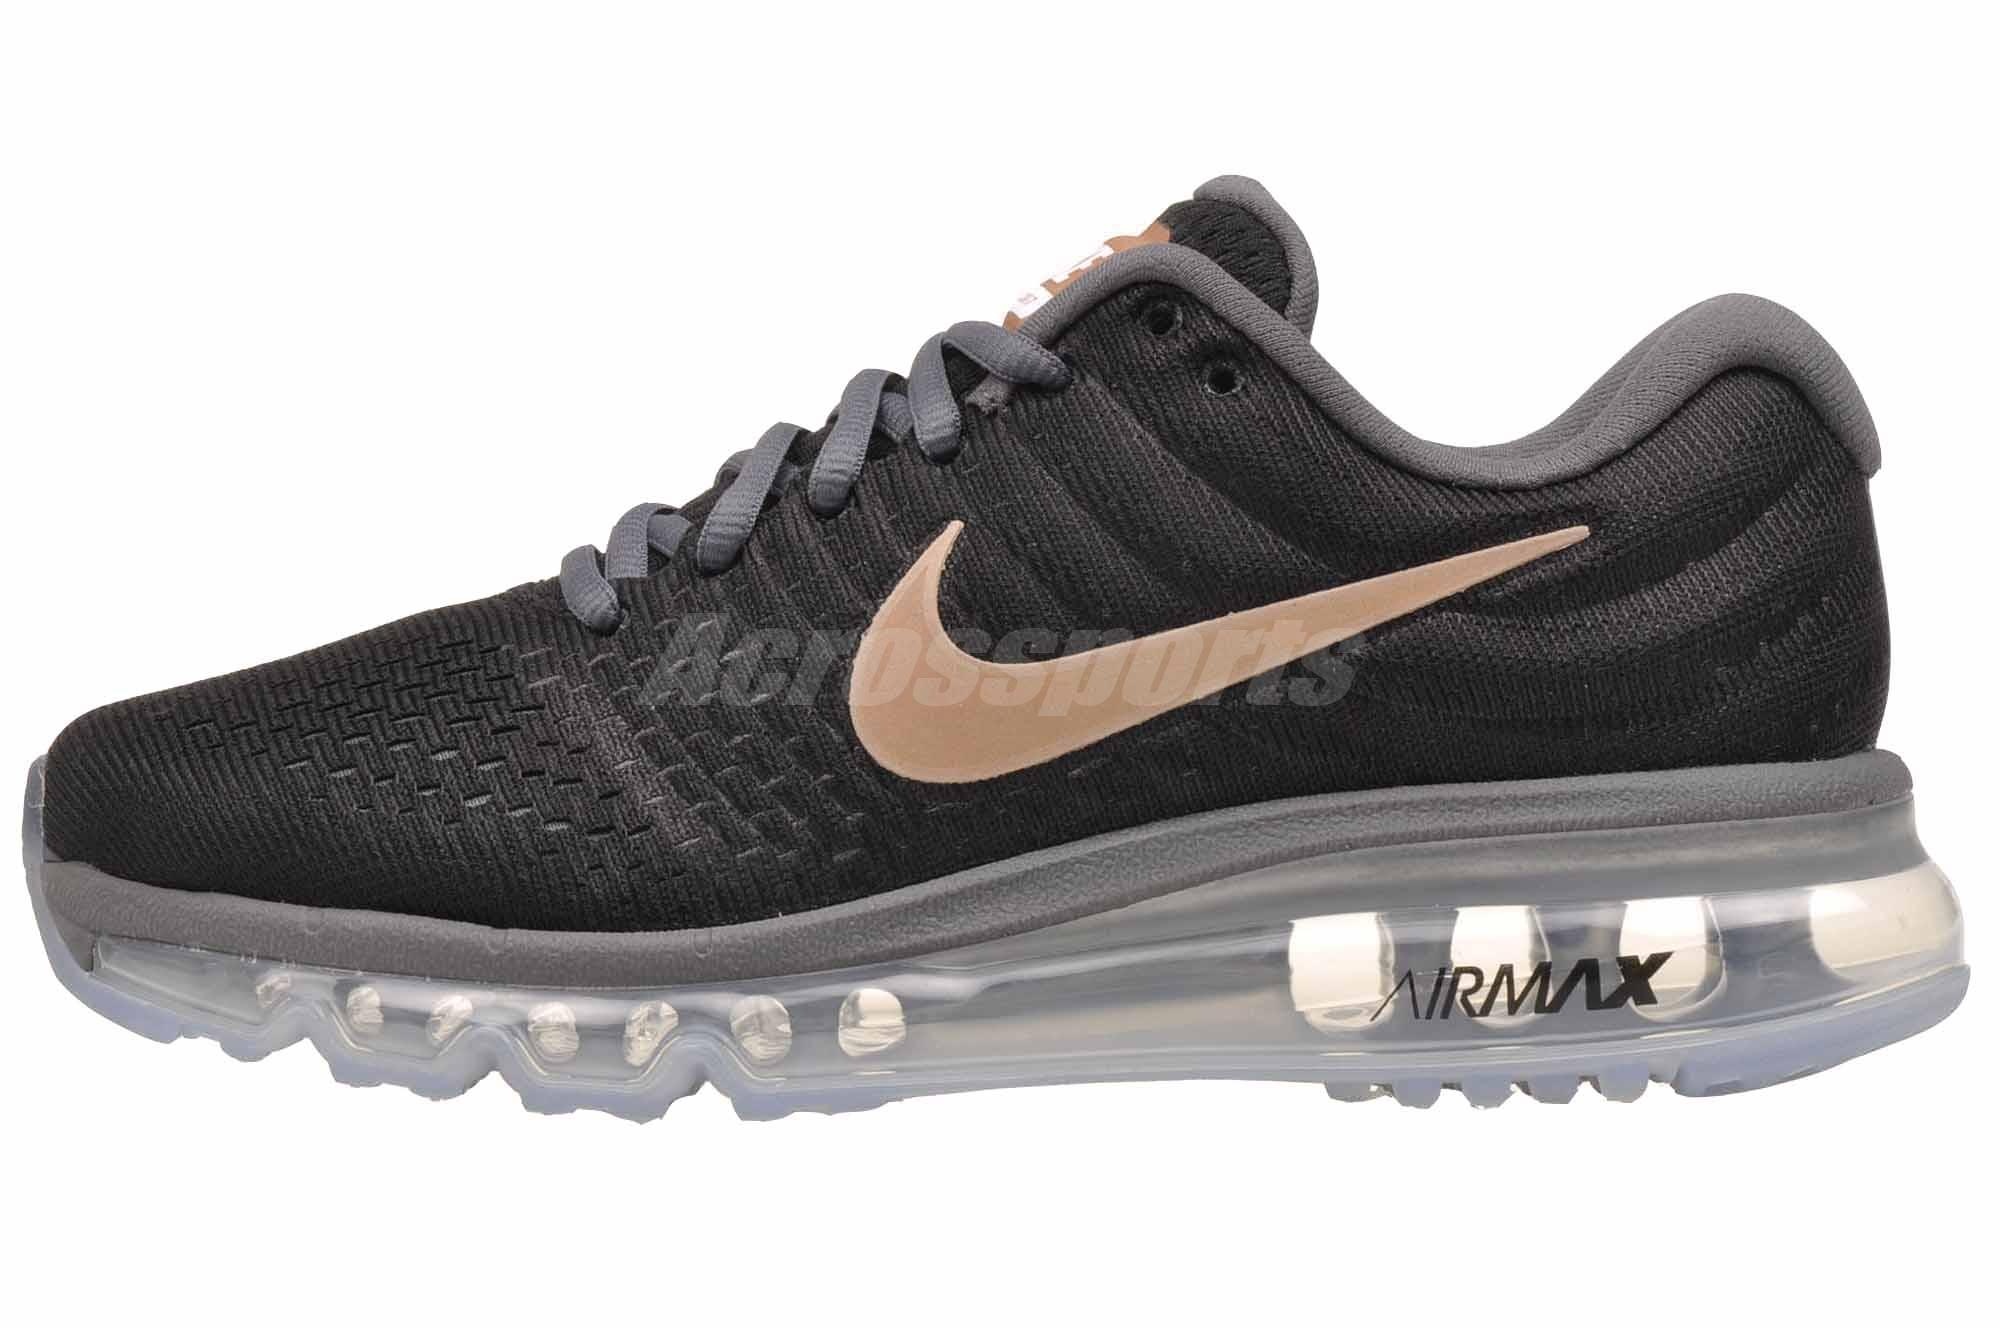 new arrival ad86b e754a Details about Nike Wmns Air Max 2017 Running Womens Shoes Black Bronze NWOB  849560-008